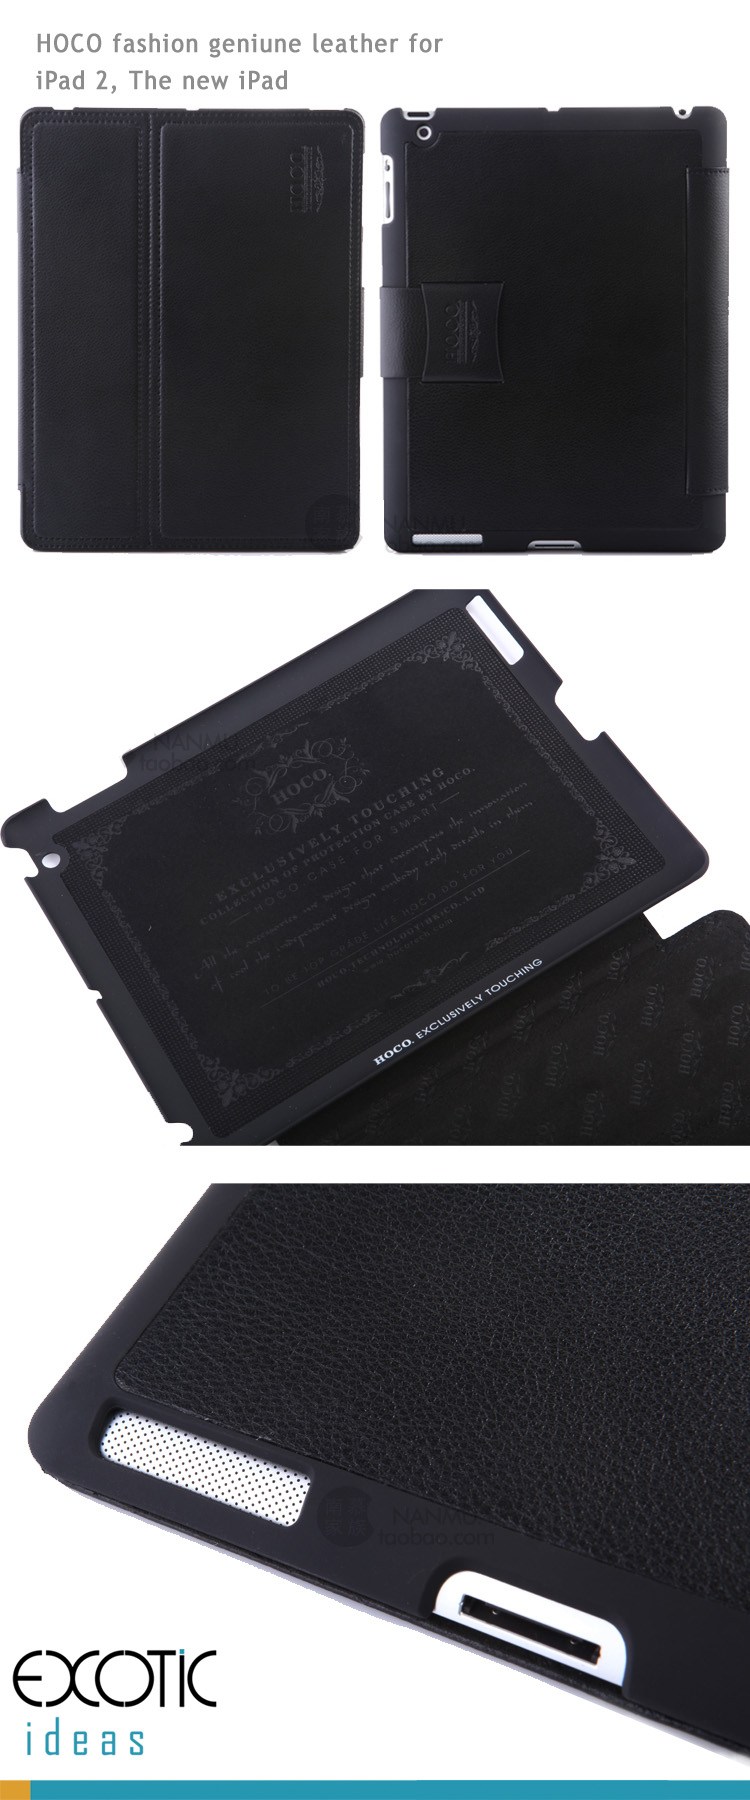 HOCO Genuine Leather for iPad 2, The new iPad Sleeve Bag Case, Geniune Leather for Inner and Otter Case